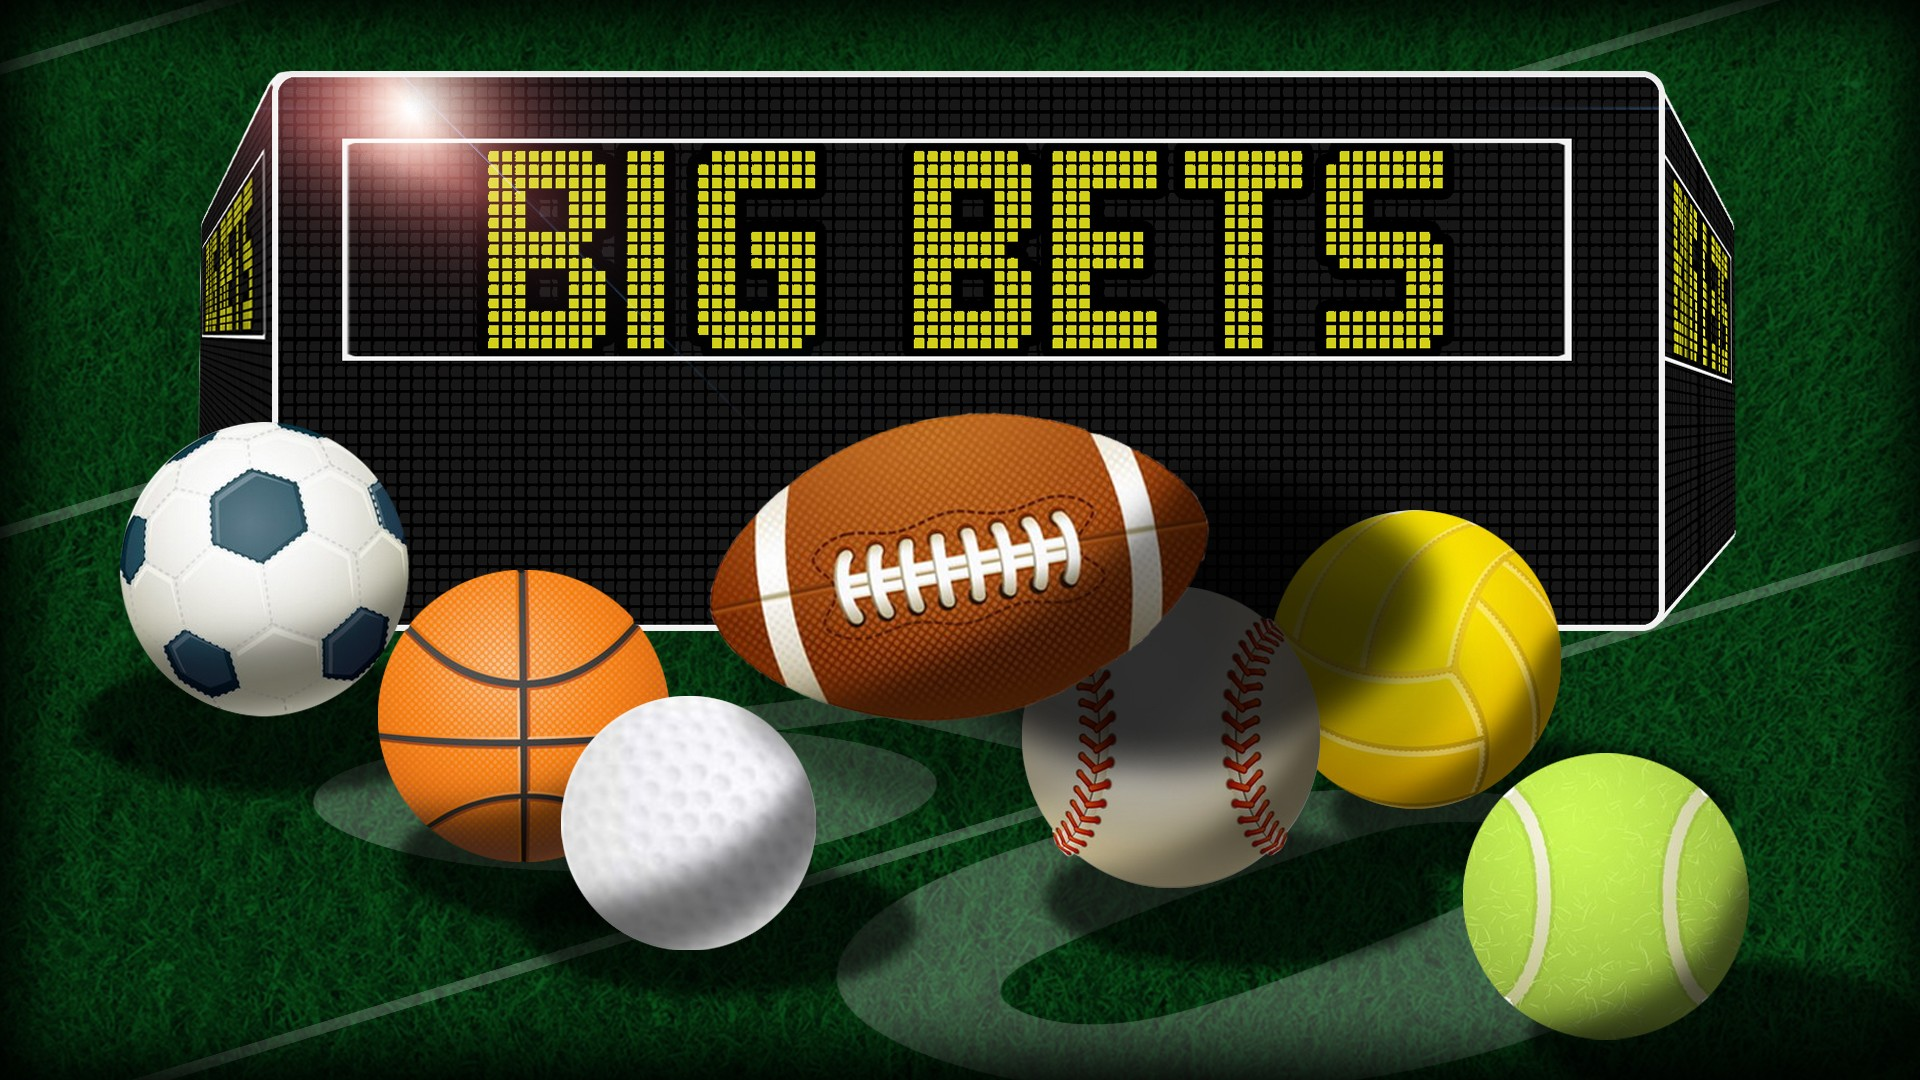 Betting online on the football